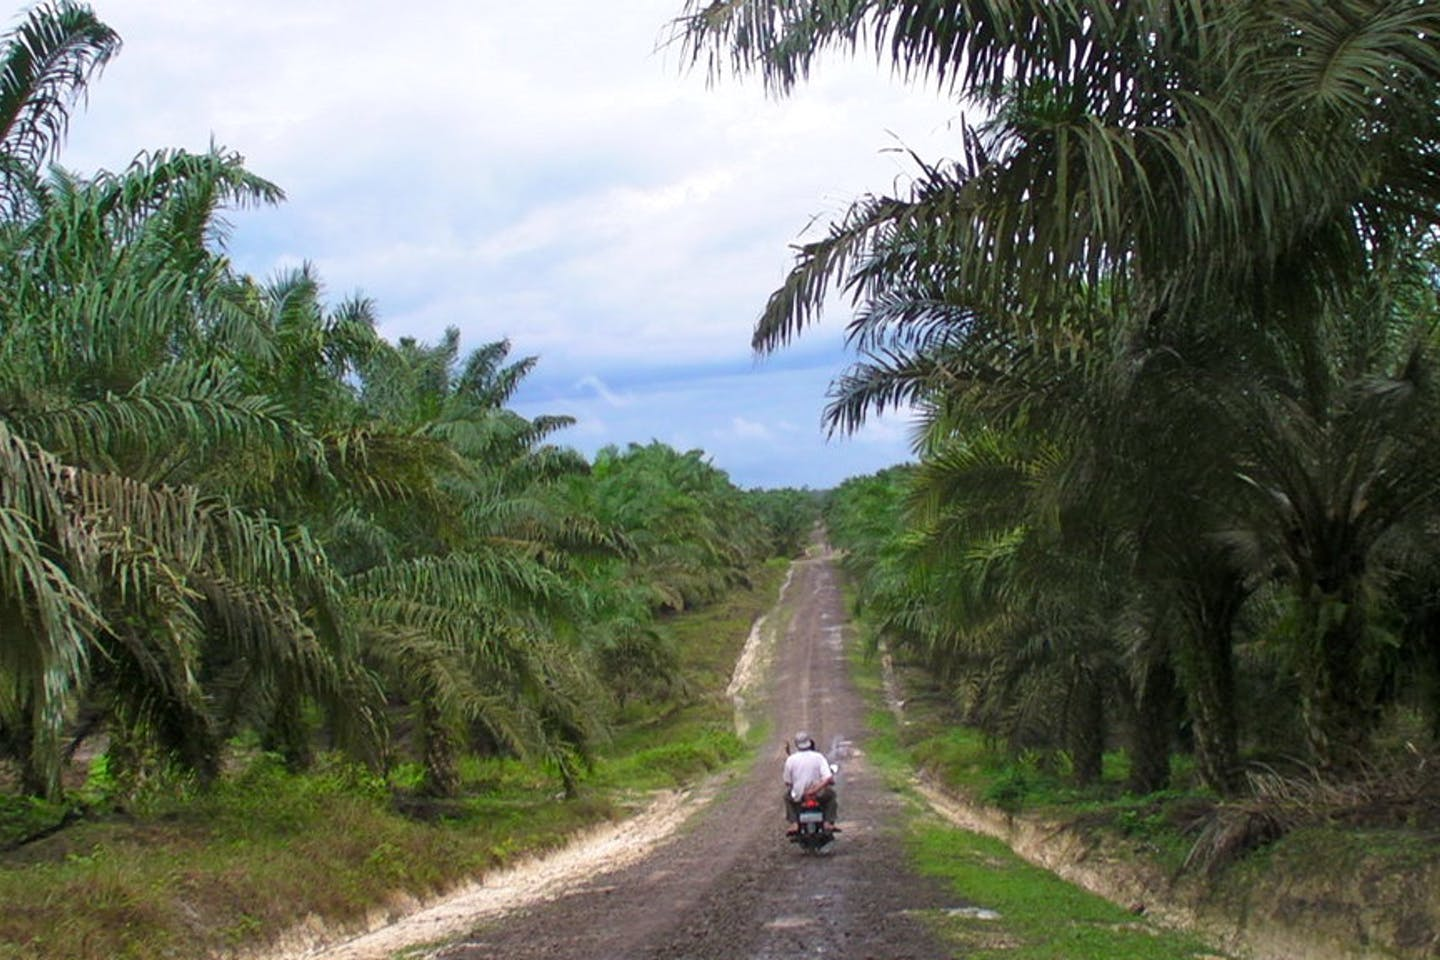 A palm oil plantation in Borneo with a road down the middle and people travelling